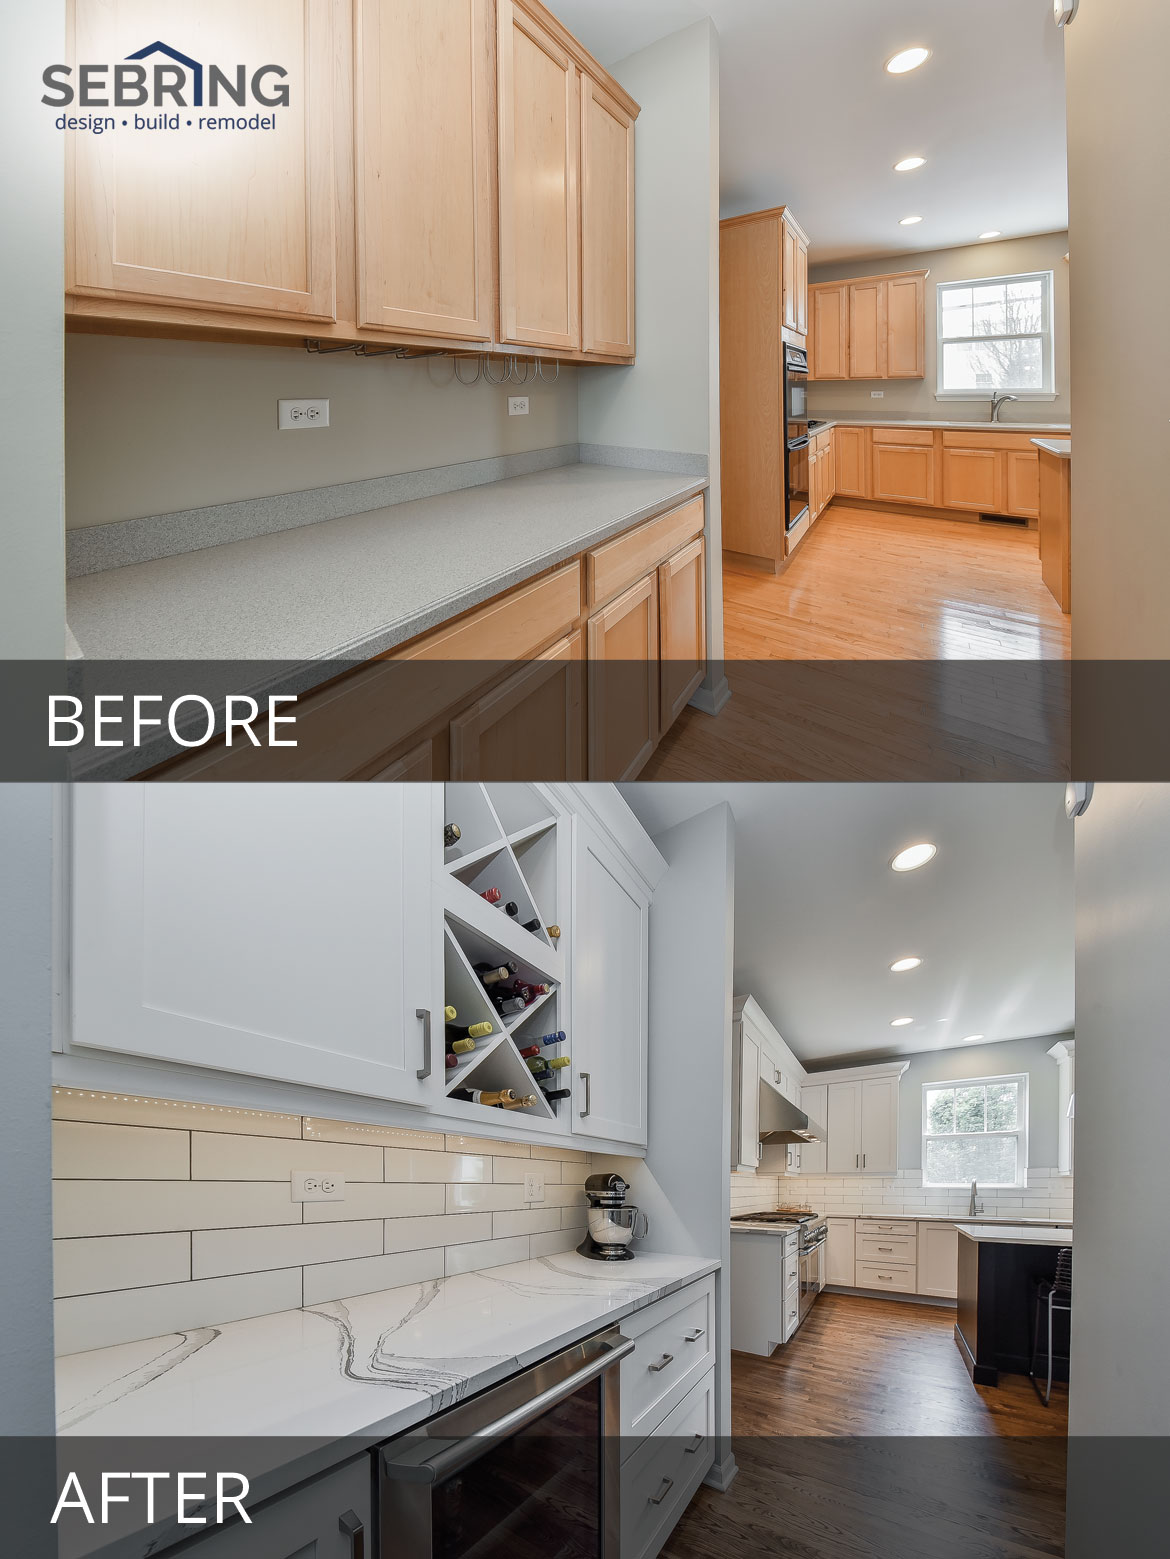 Plainfield Kitchen Remodel Before and After Pictures - Sebring Design Build